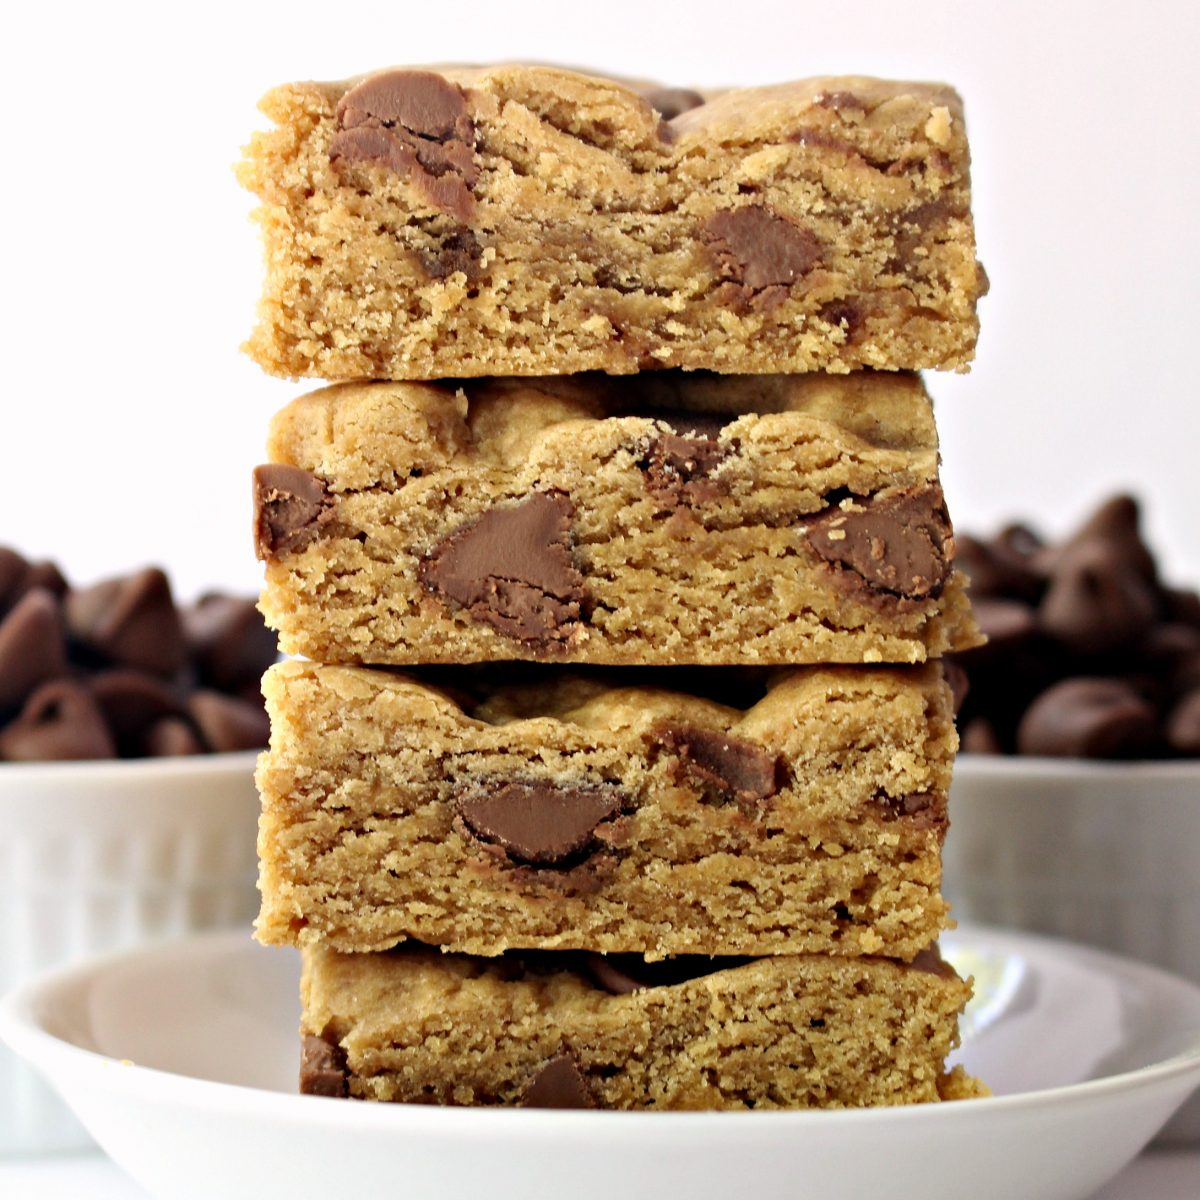 Stack of cookie bars from side showing thick, chewy interior.